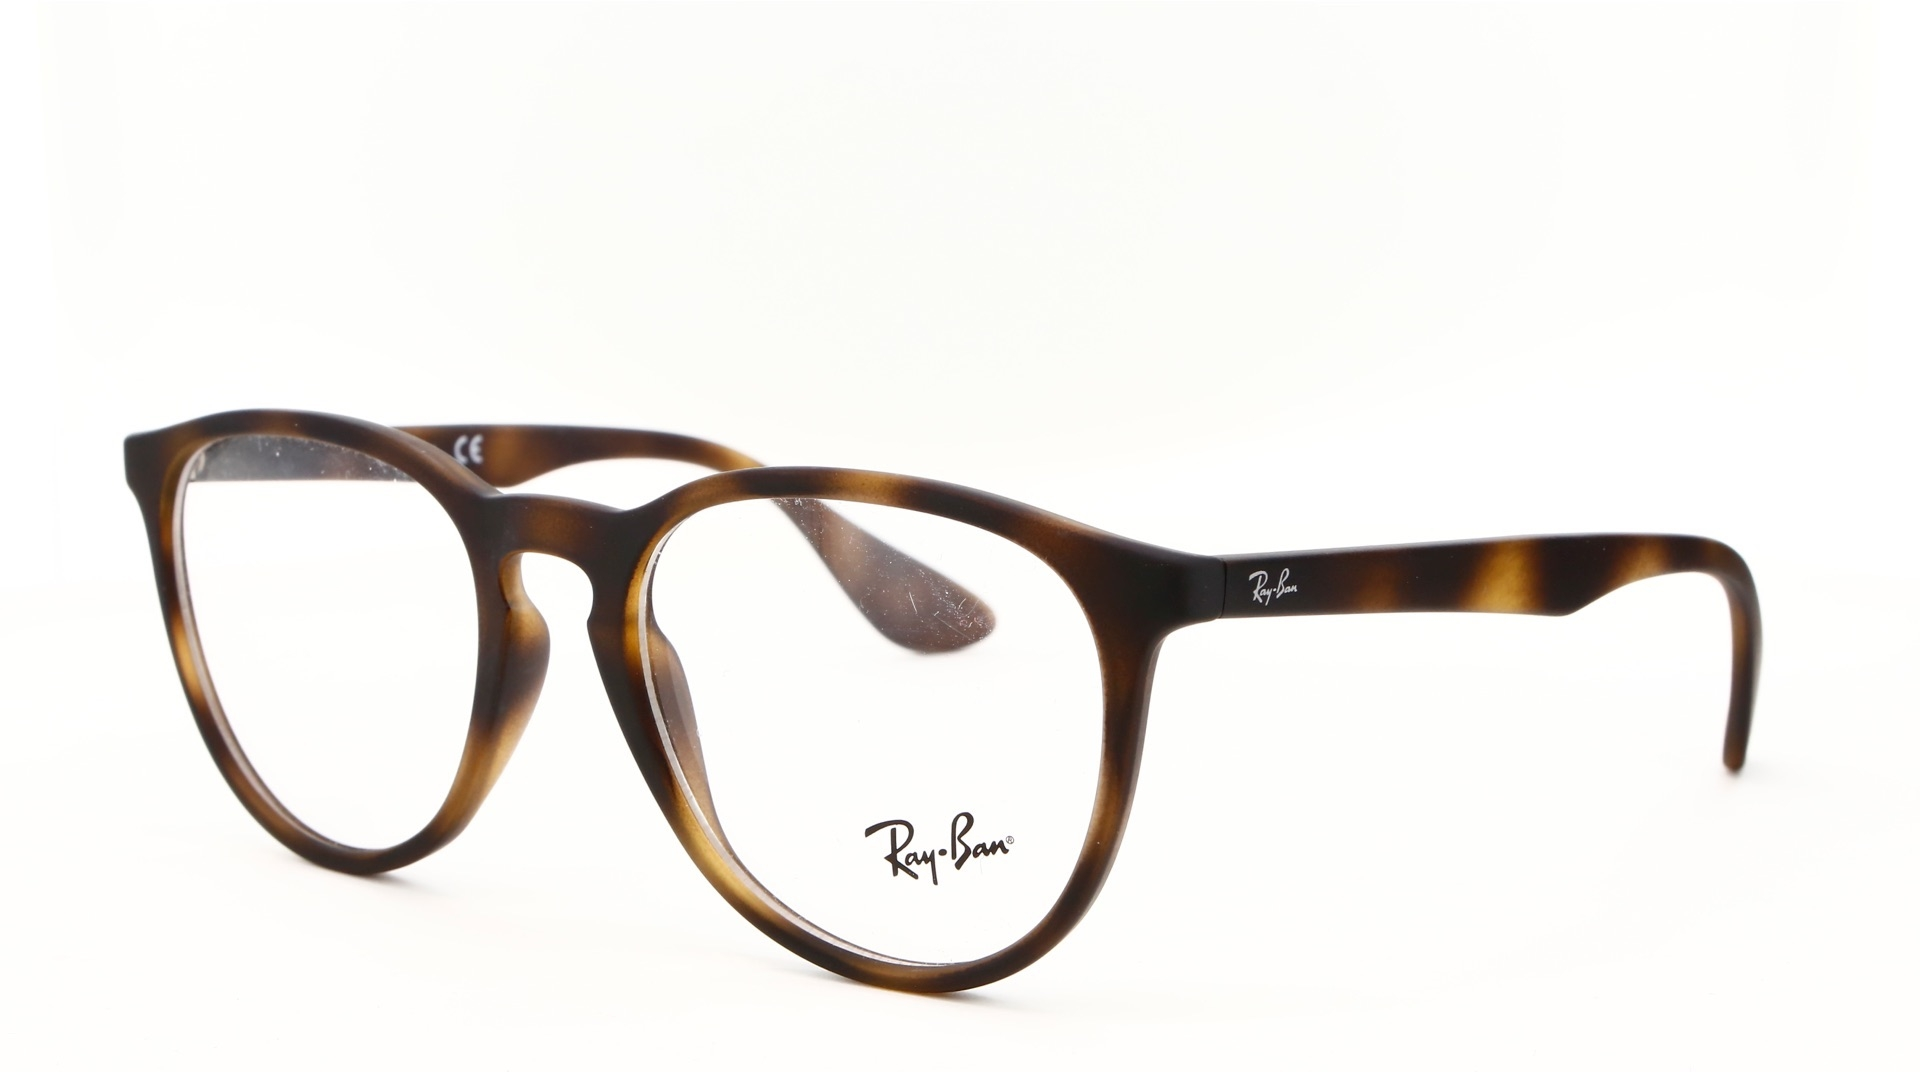 Ray-Ban - ref: 72940